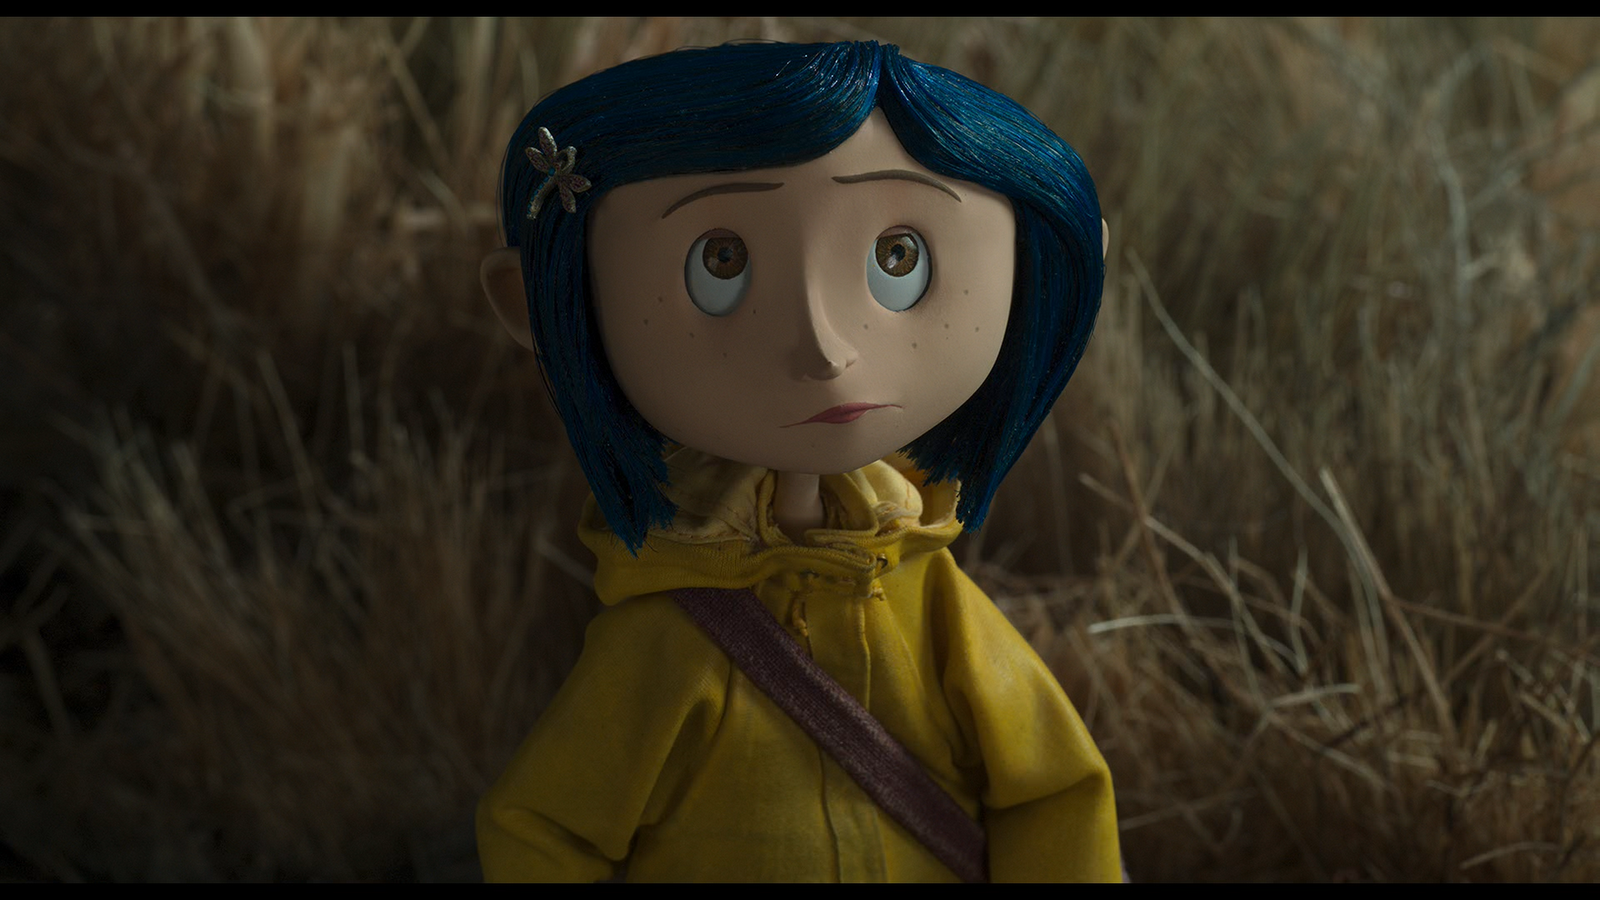 Joining Henry Selicku0027s Coraline are Pixaru0027s transcendental masterpiece Up and Wes Andersonu0027s brilliant adaptation of Roald Dahlu0027s novel Fantastic Mr Fox. & The Film Emporium: Review: Coraline and the Secret Door (Henry ...